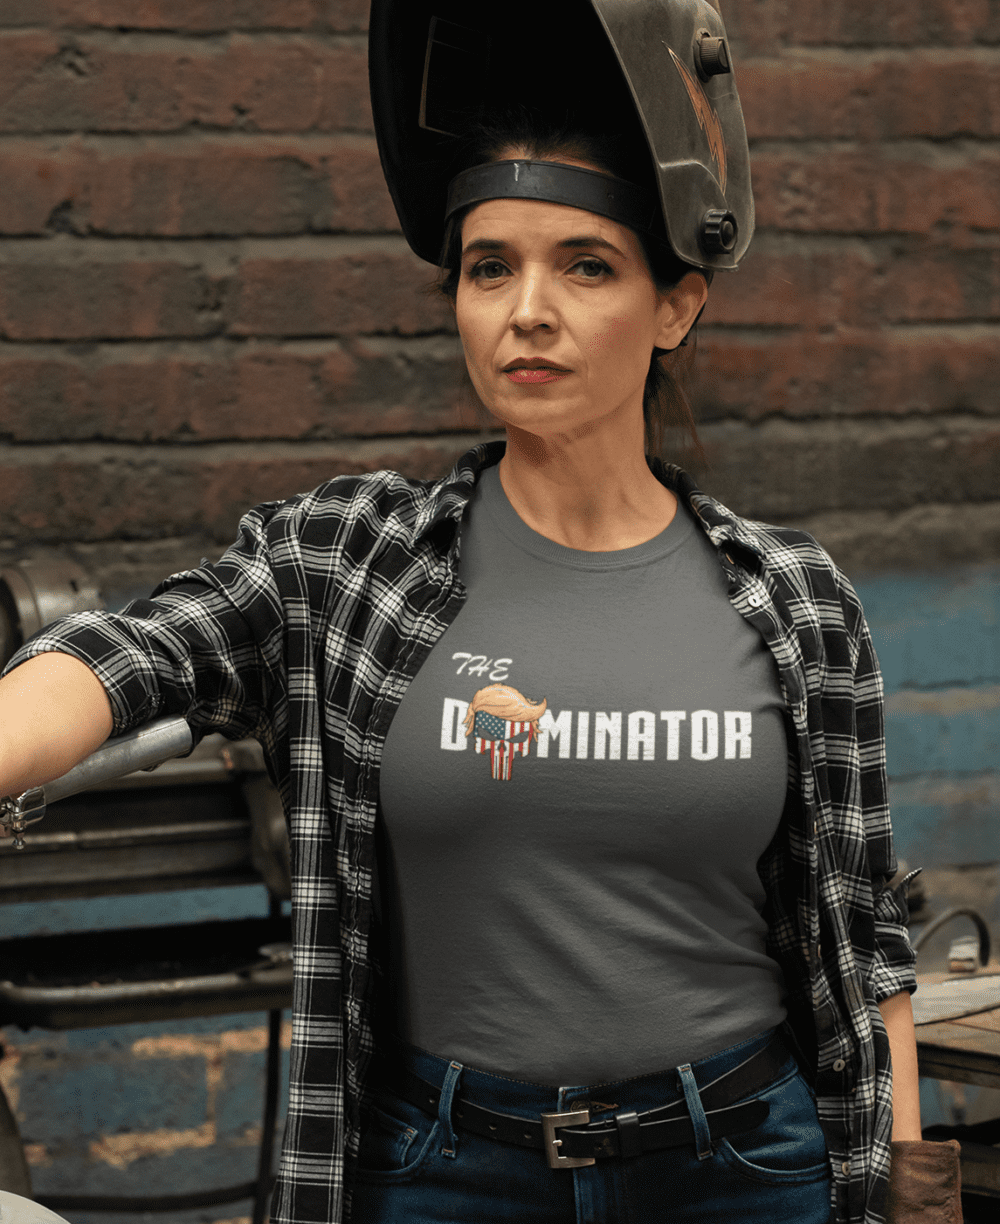 The Dominator in a Charcoal Women's T Shirt